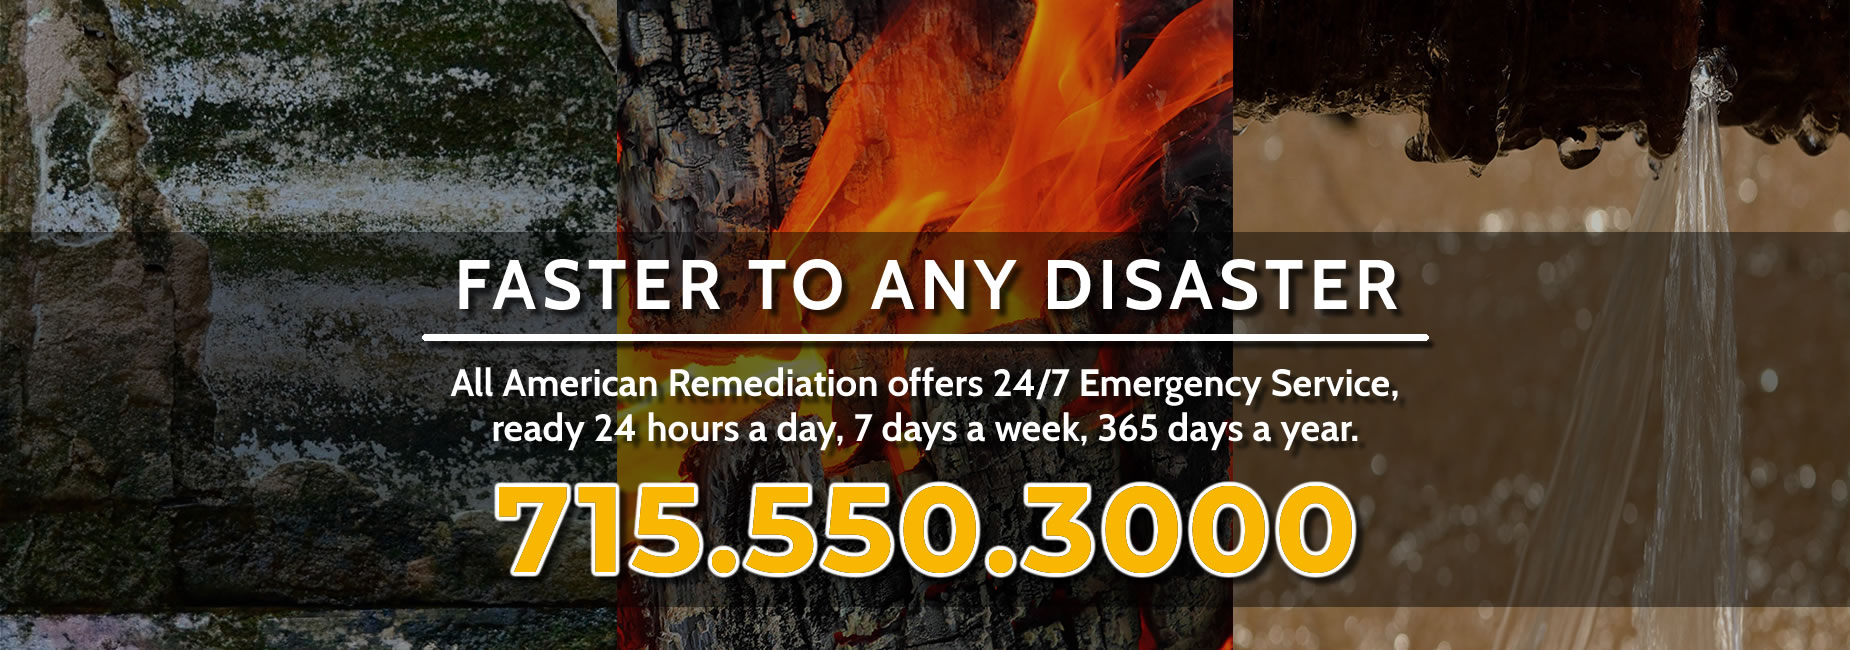 Faster To Any Disaster - All American Remediation offers 24/7 Emergency Service, ready 24 hours a day, 7 days a week, 365 days a year. Call 715.550.3000